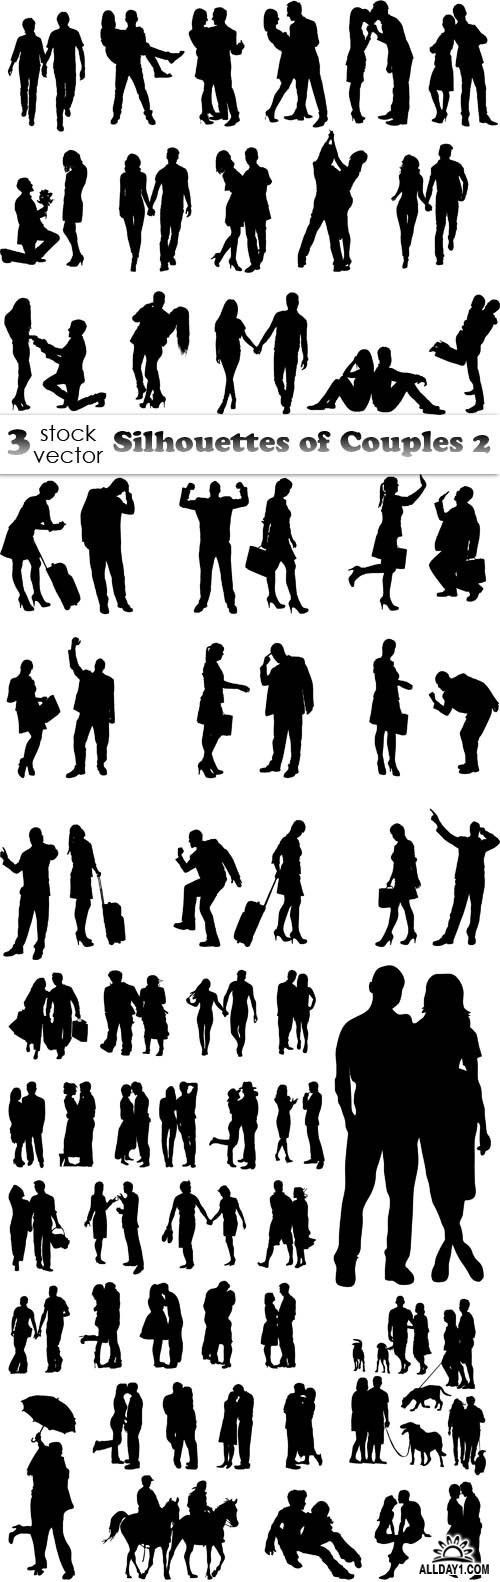 Vectors - Silhouettes of Couples 2